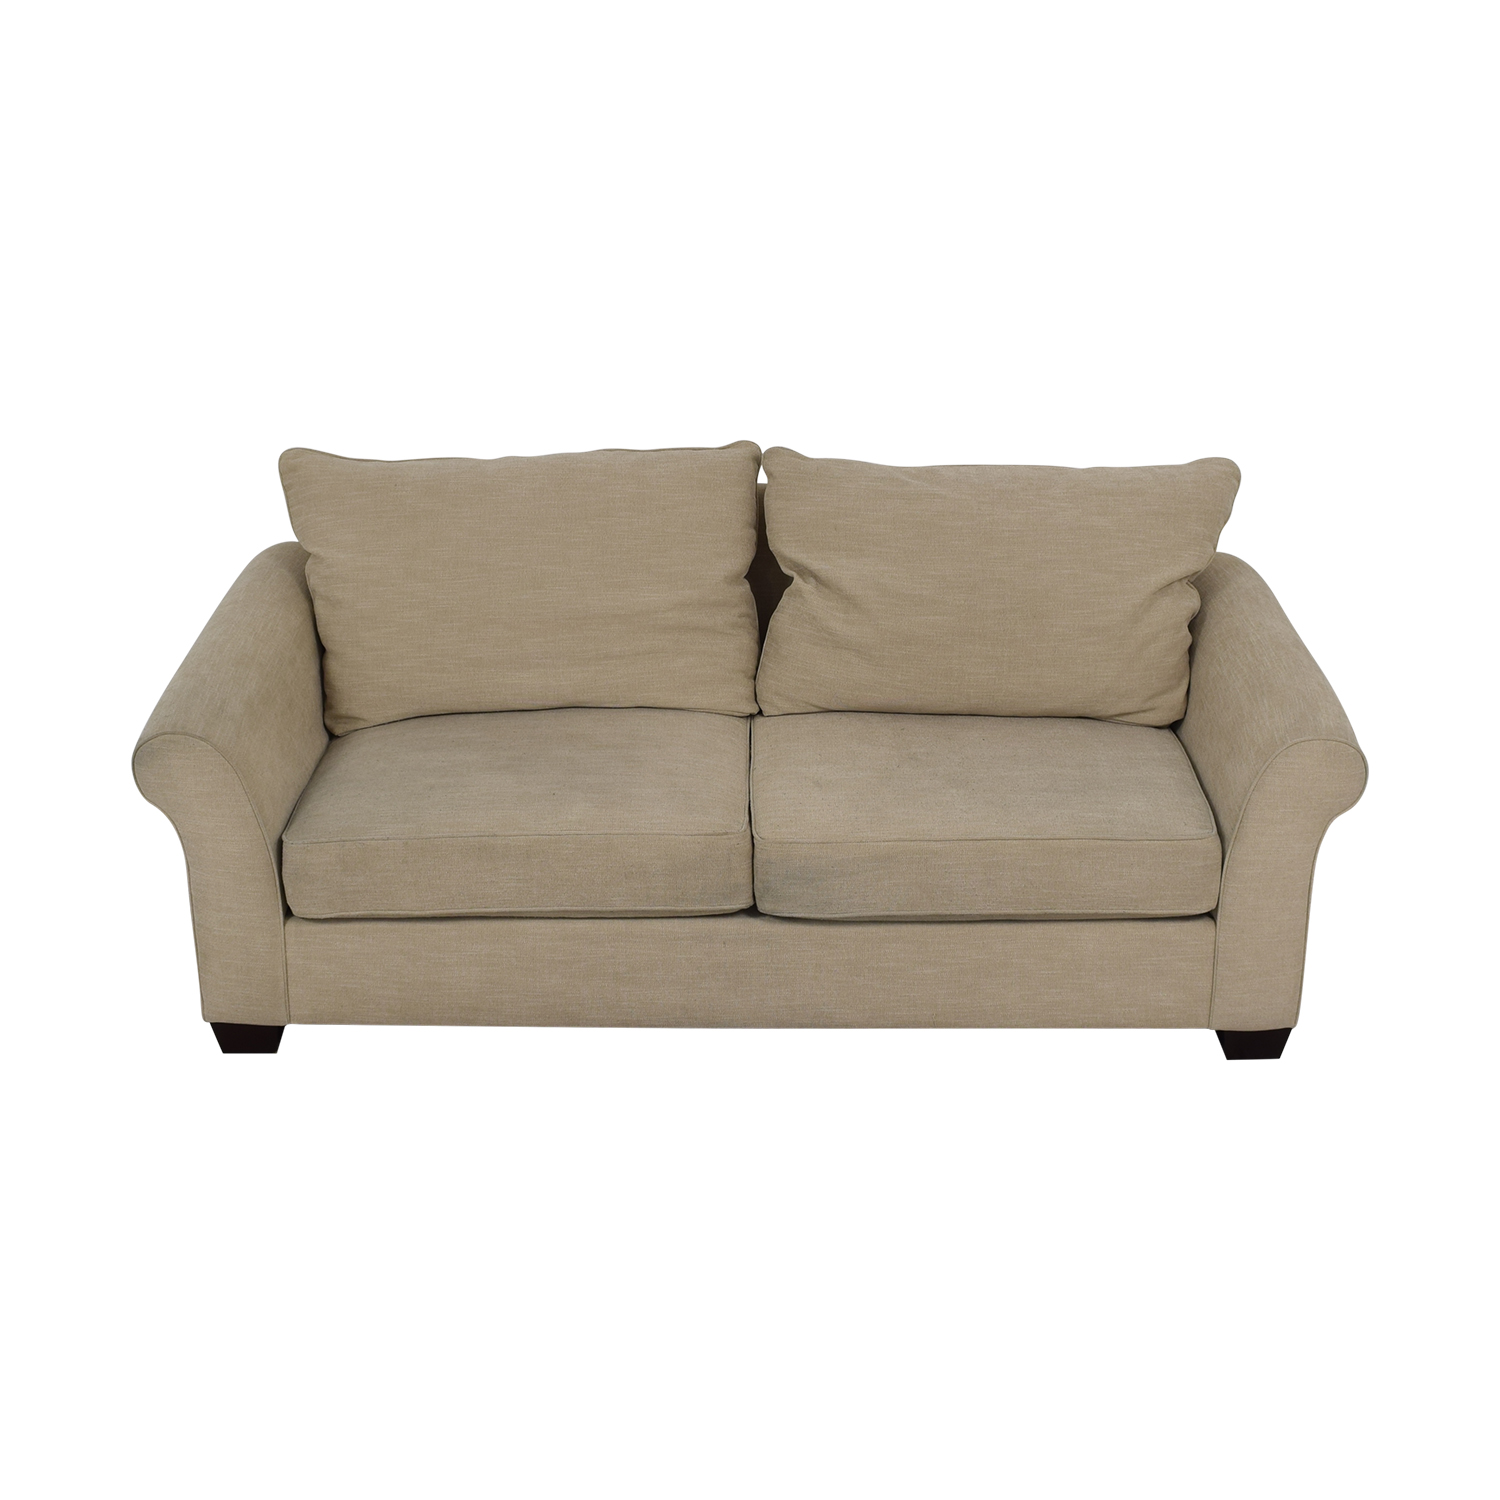 Pottery Barn Pottery Barn Grey Roll Arm Upholstered Couch coupon